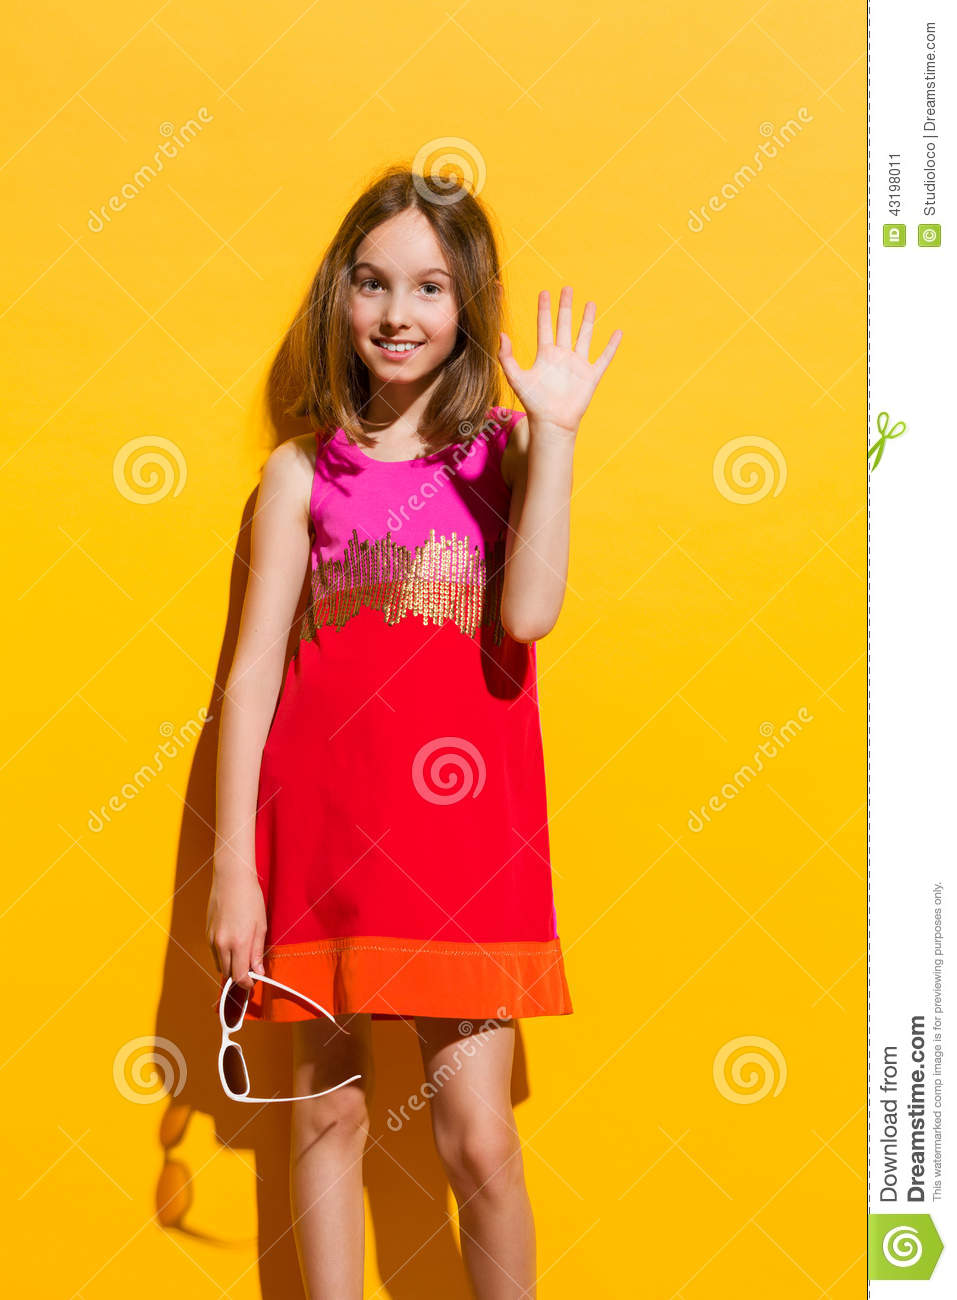 fashionable little girl waving hand stock image image of